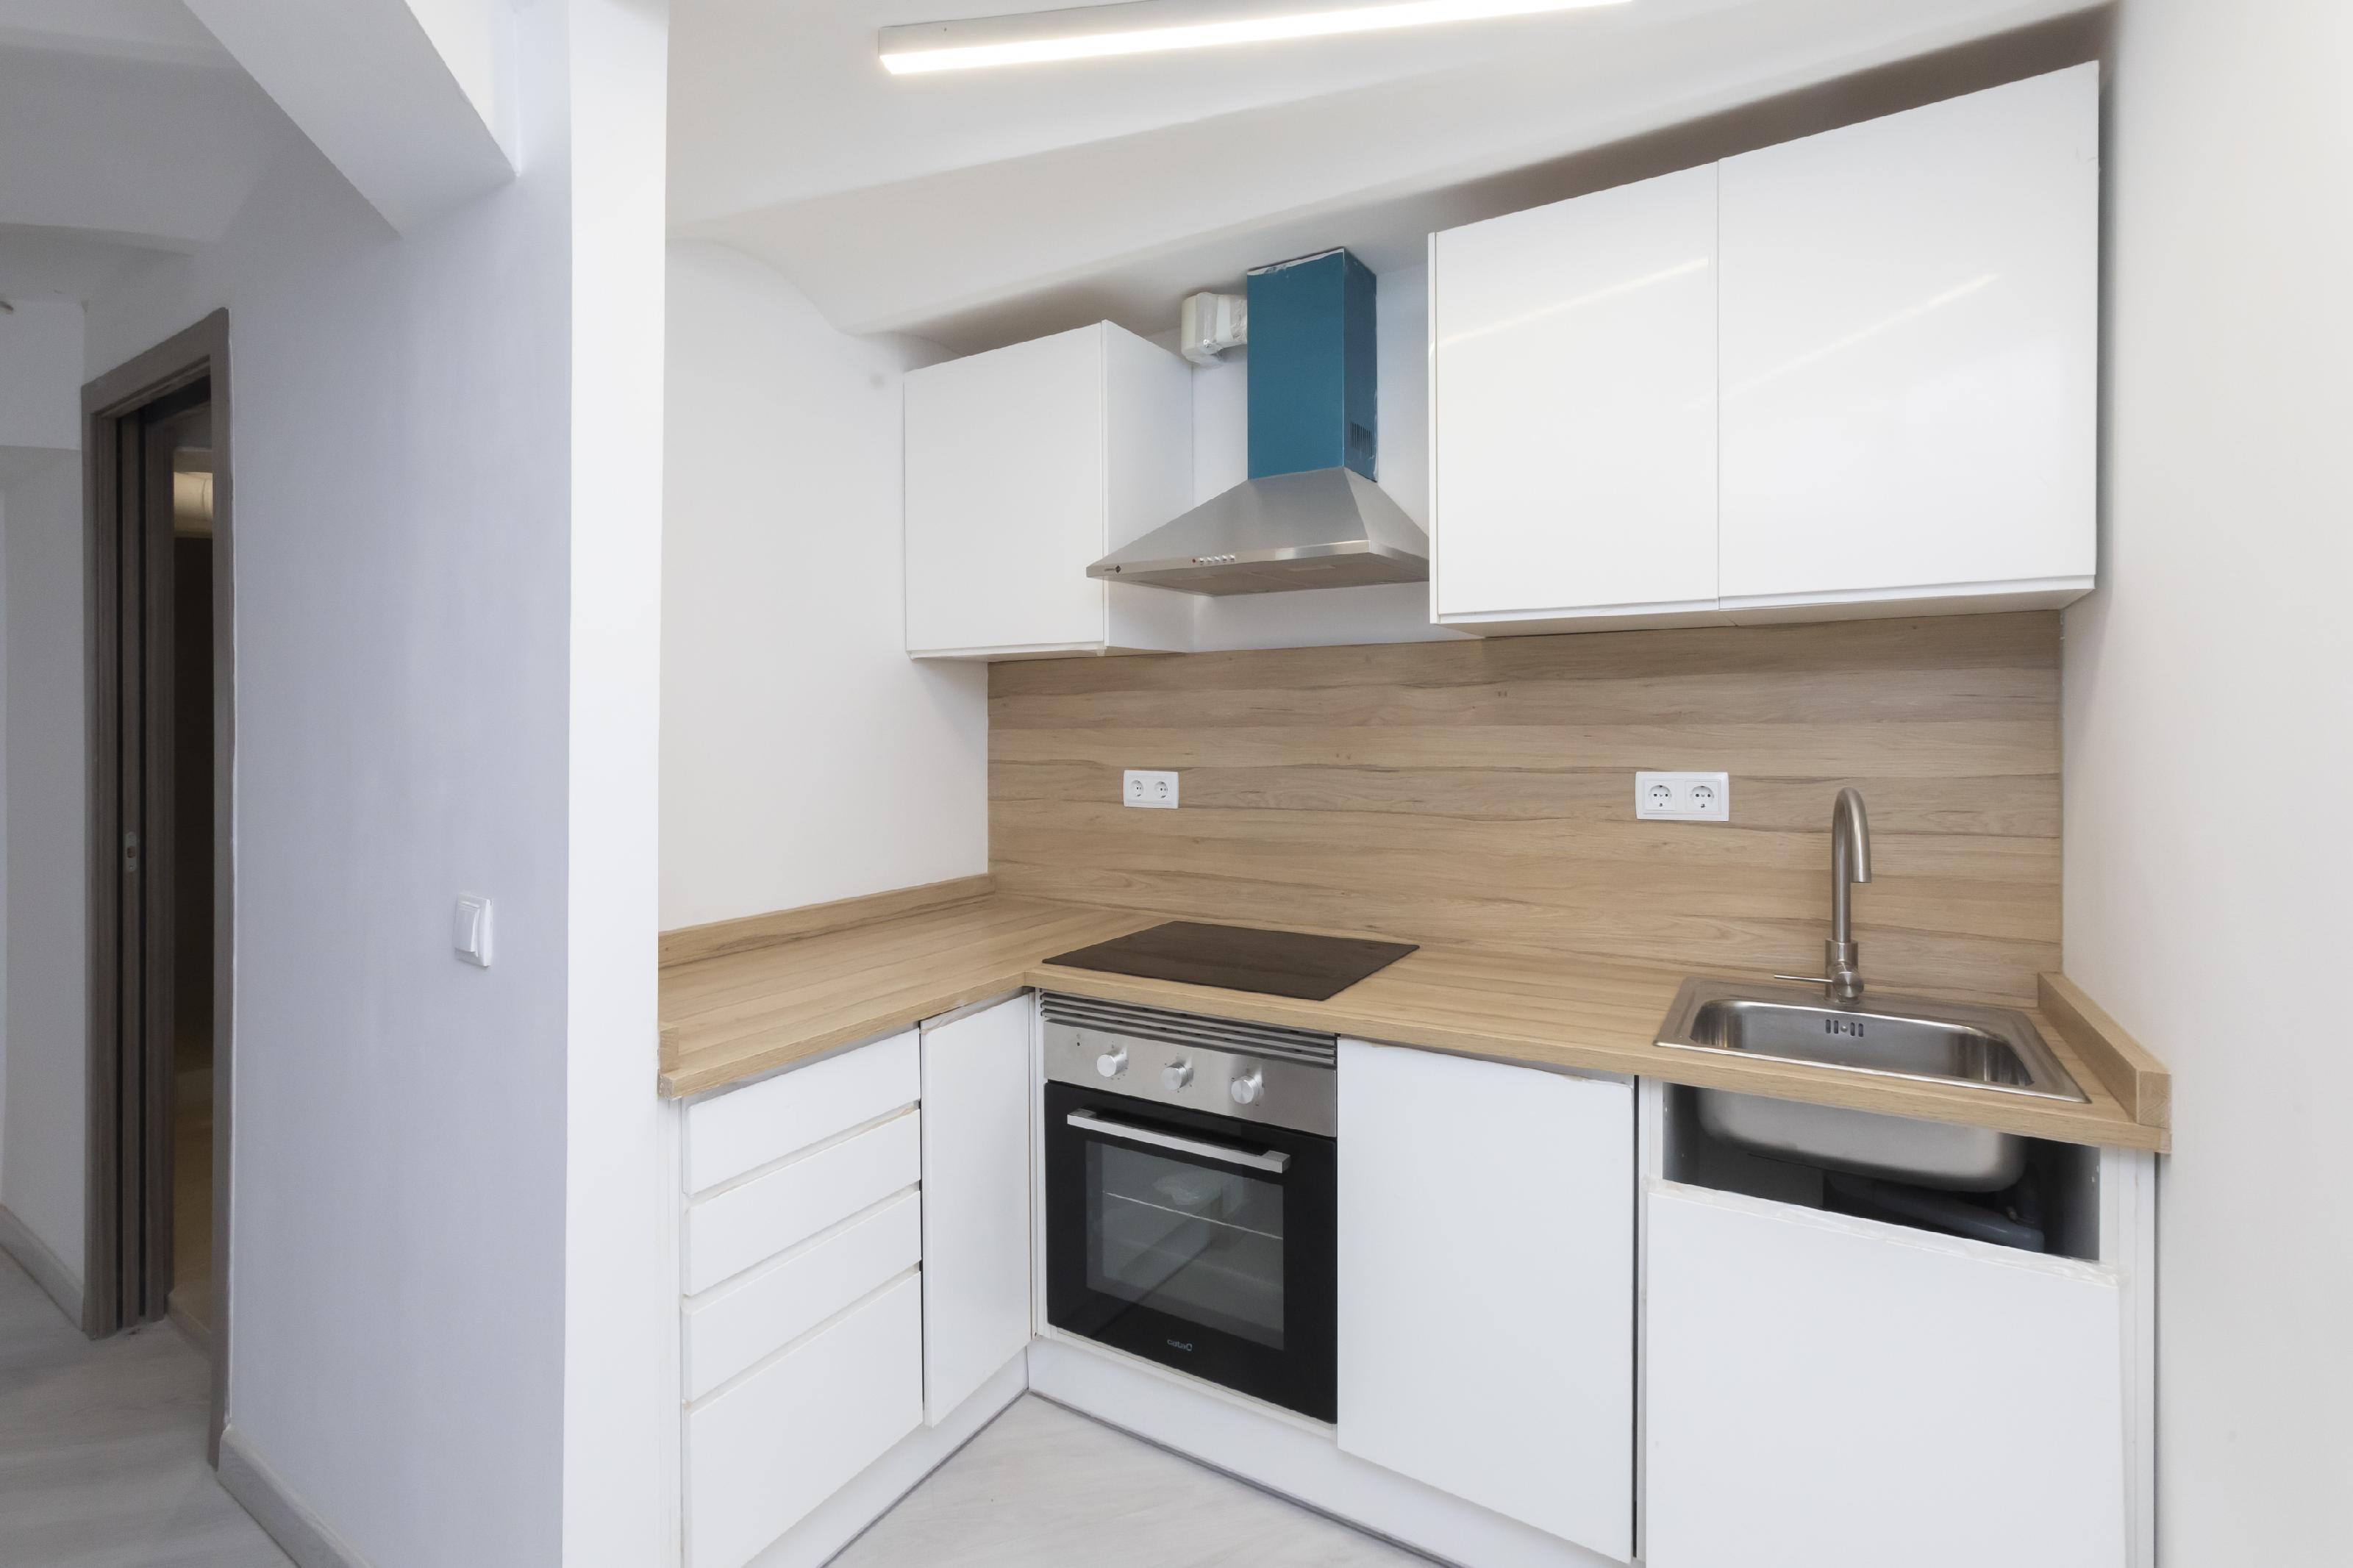 242978 Flat for sale in Gràcia, Camp Grassot and Gràcia Nova 12